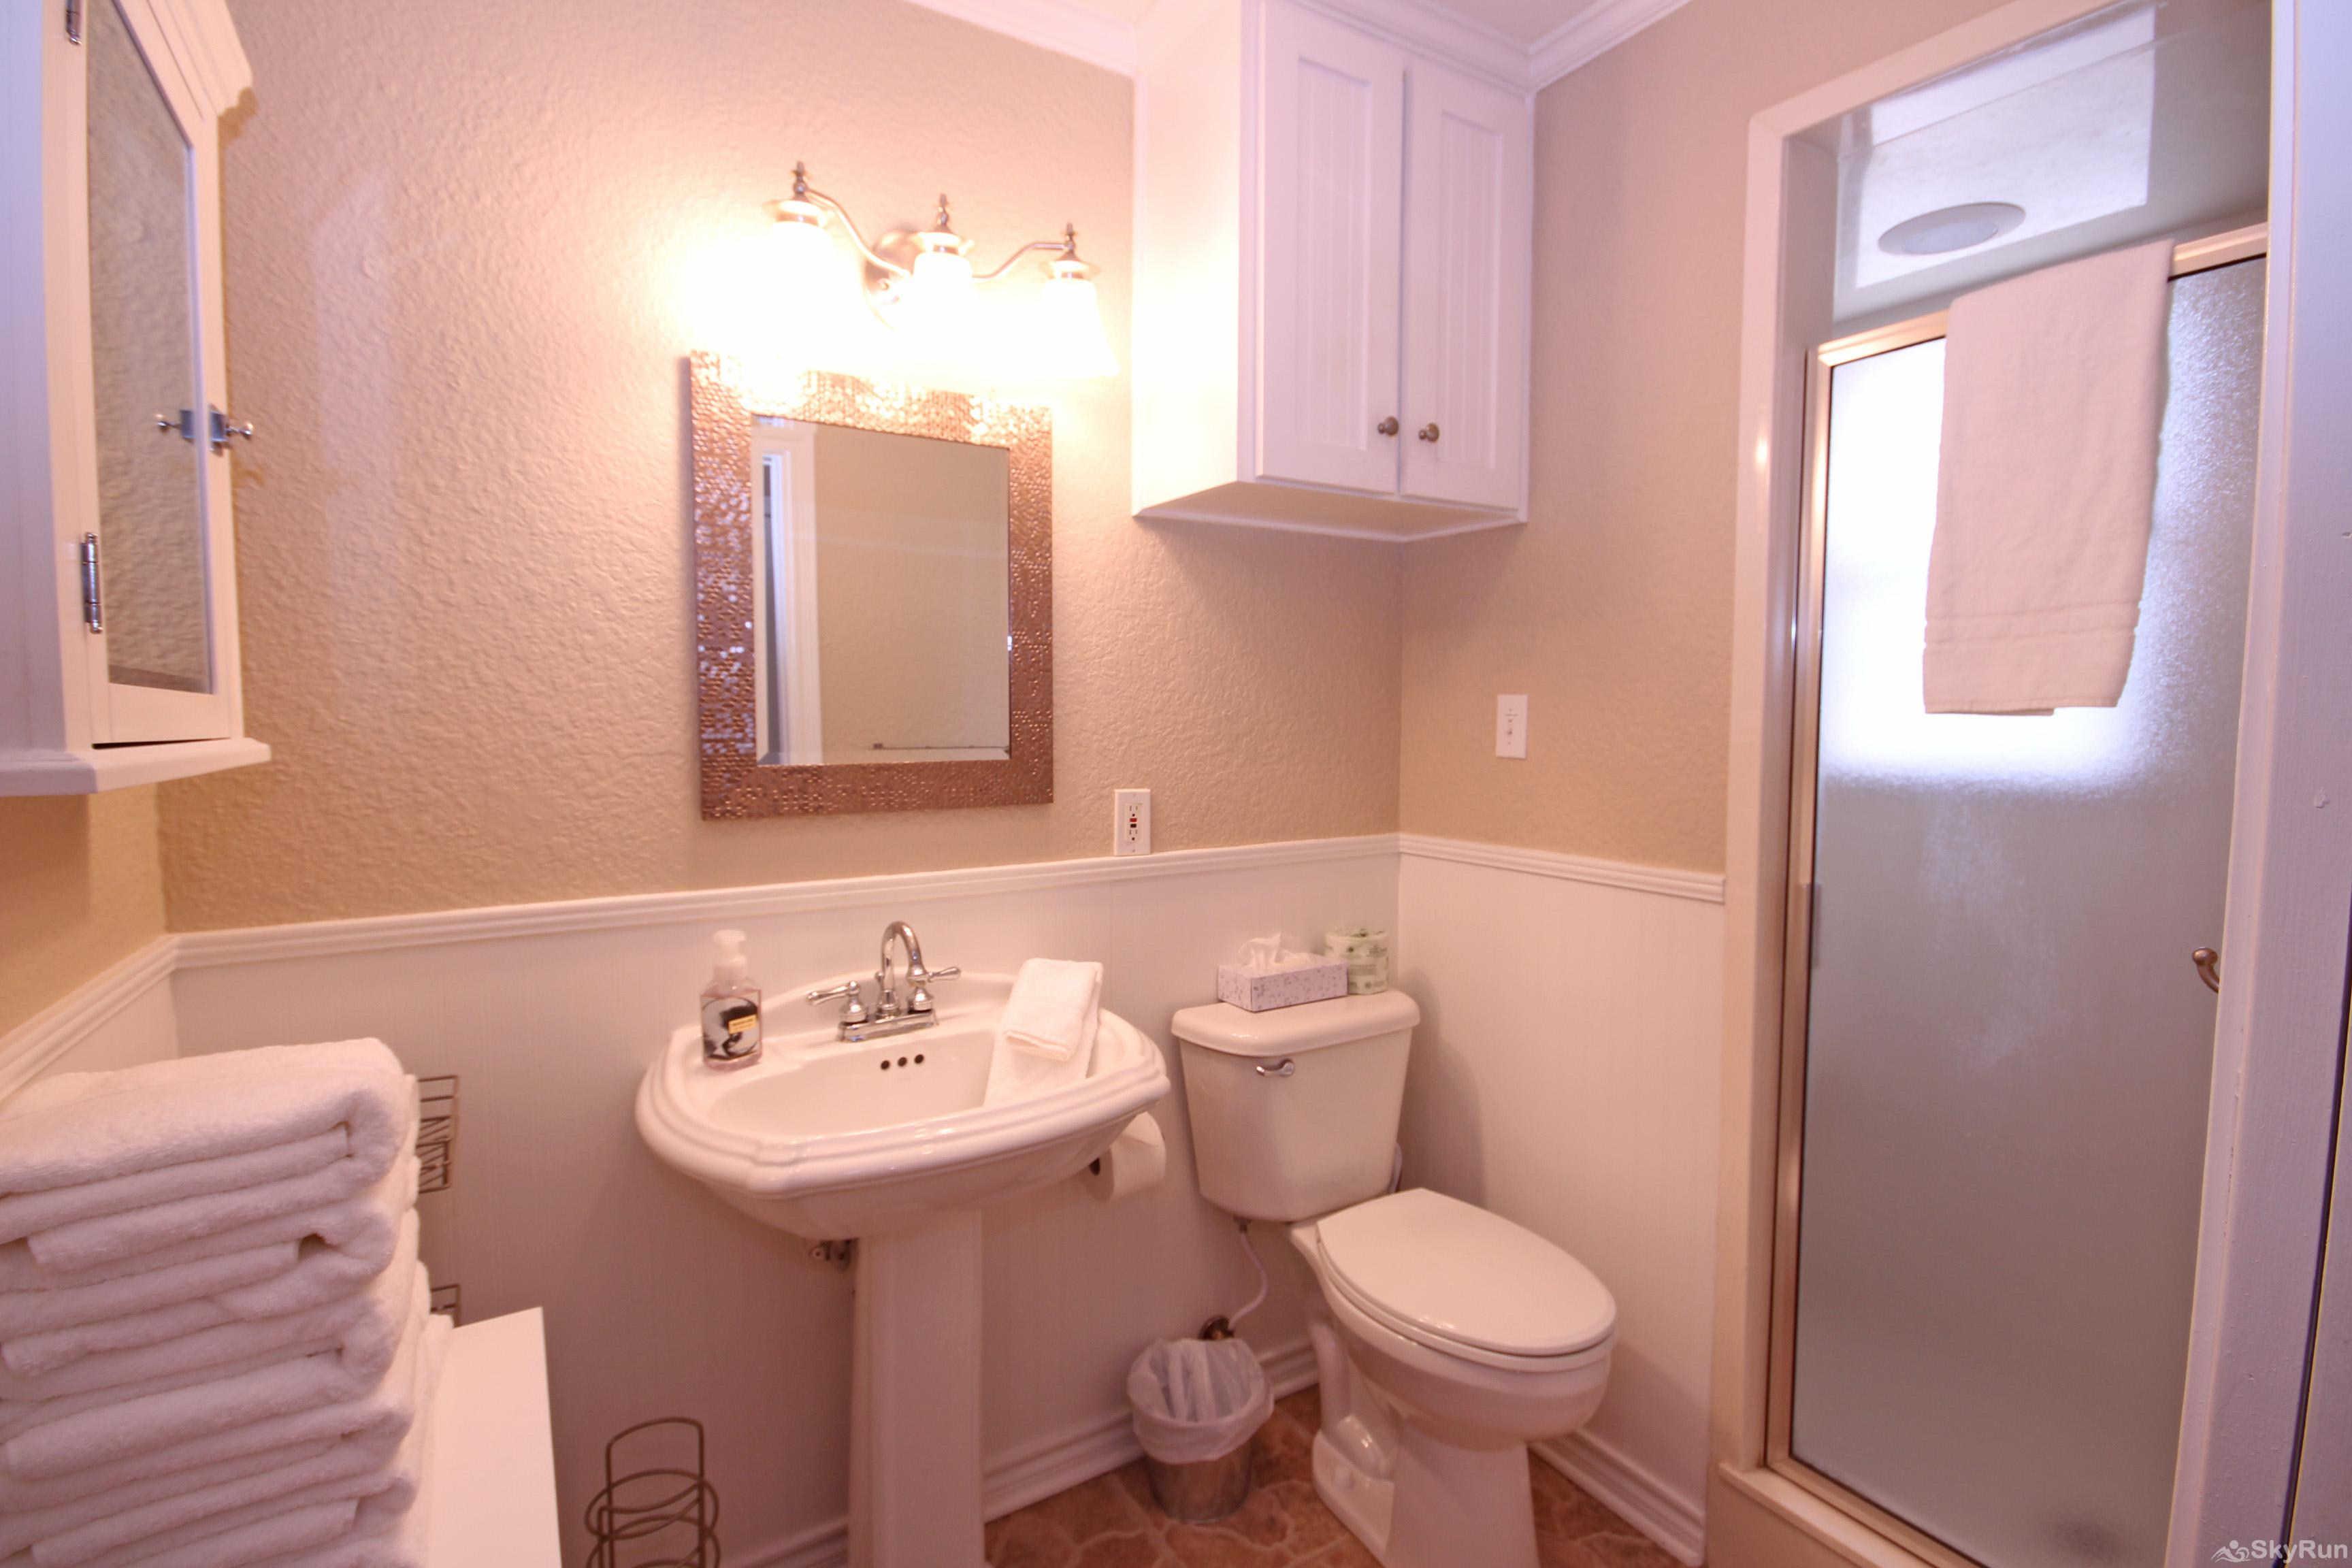 MAVERICK'S RIVER HAUS & GUEST HAUS Second full bathroom with walk-in shower